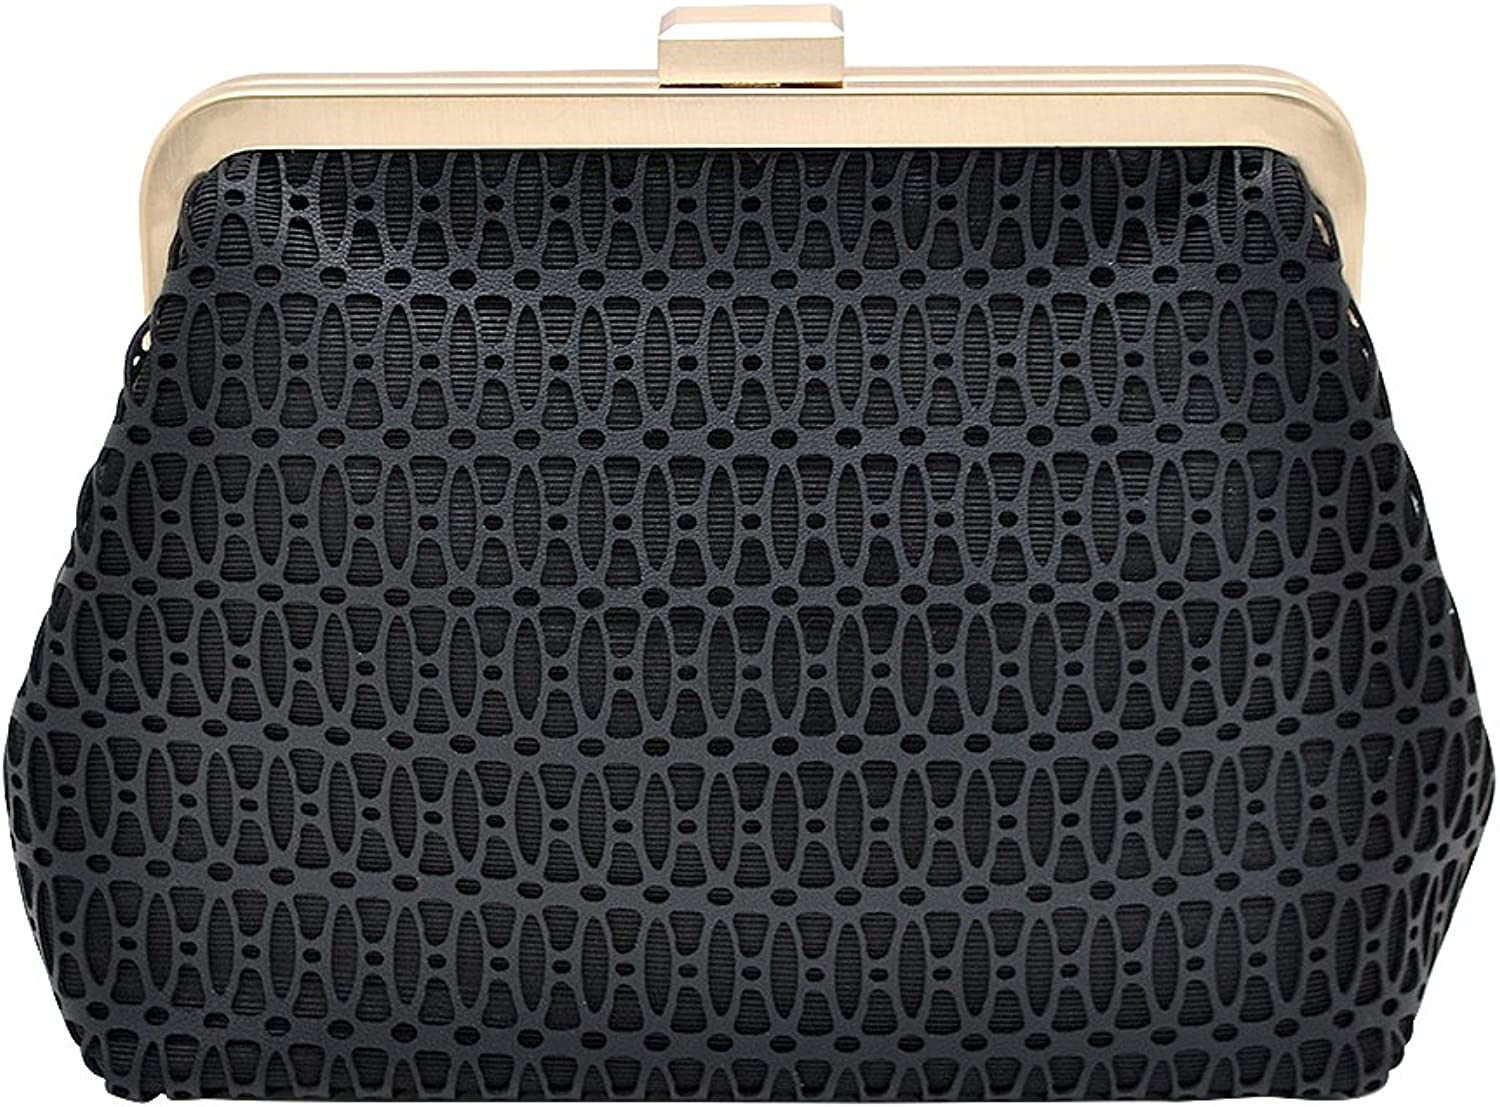 Laser Cut Faux Leather Pouch Clutch